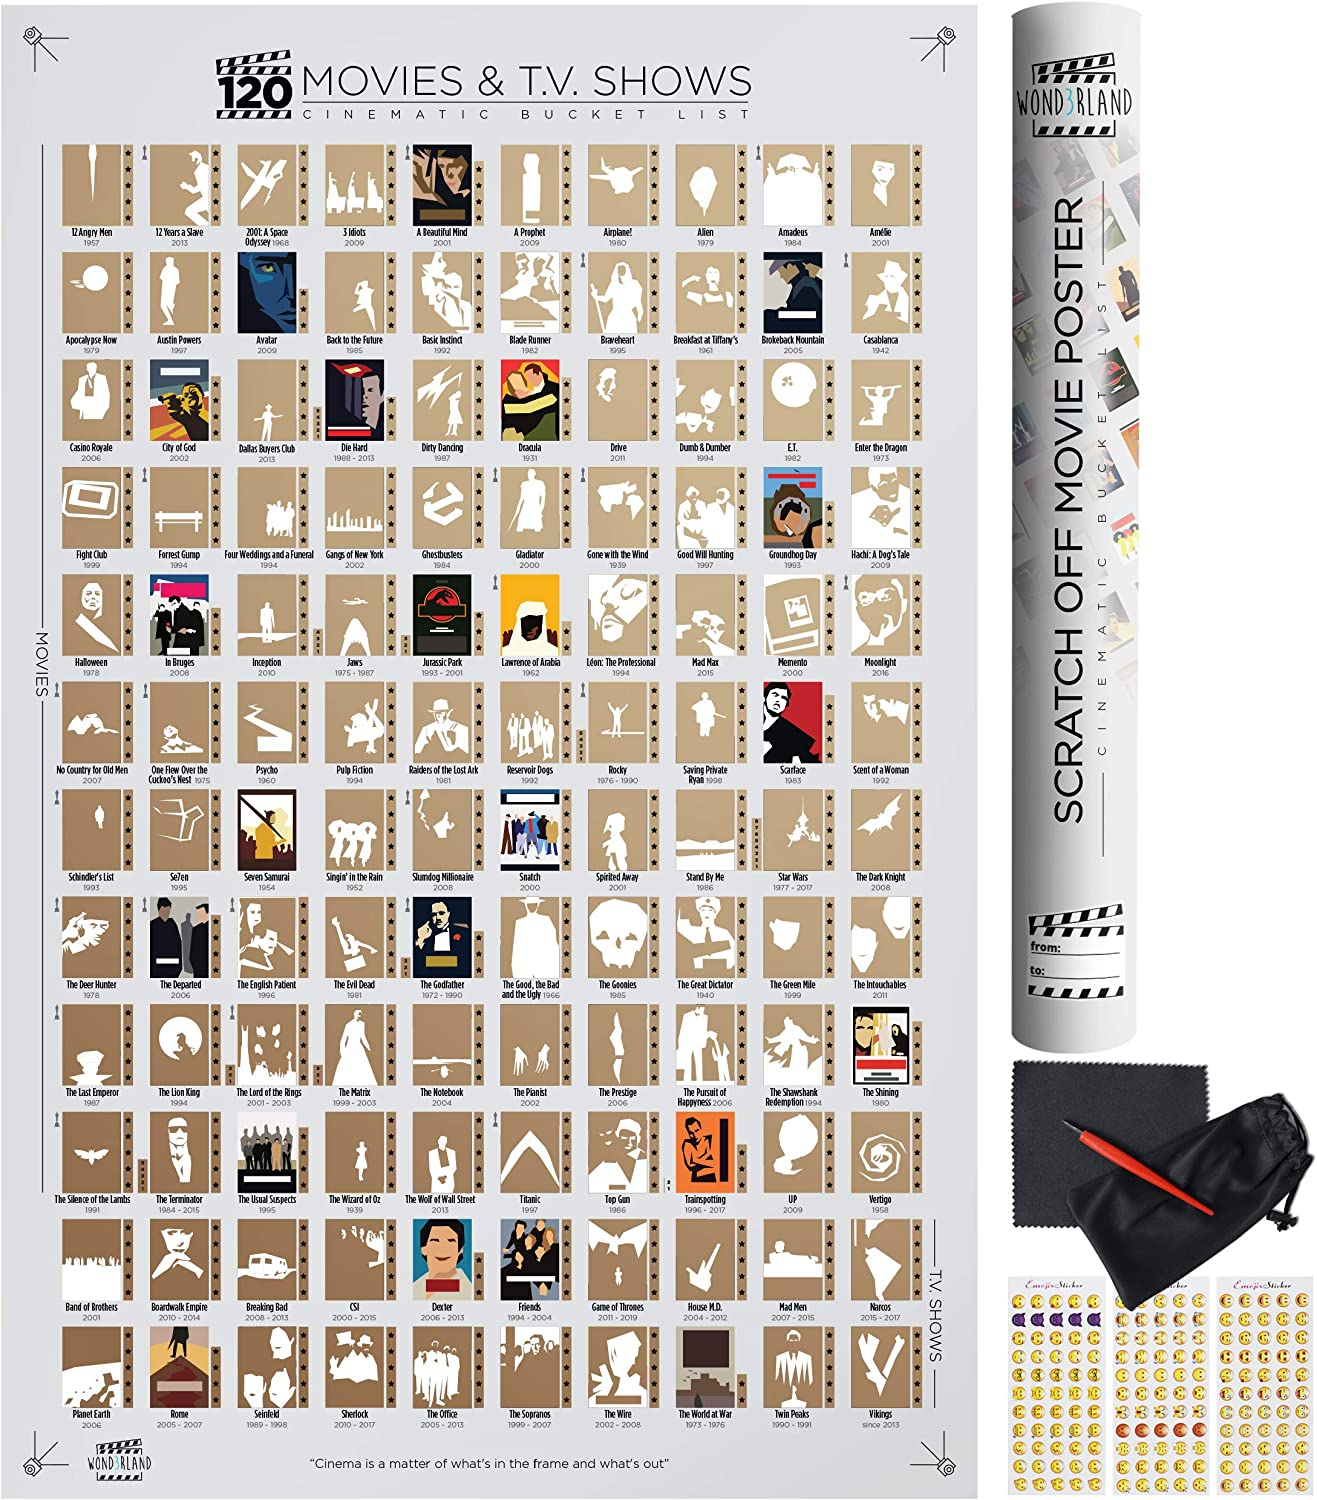 Wond3rland Premium Scratch Off Movie Poster with 100 Films & 20 TV Shows   Unique White Cinematic Bucket List   Deluxe Gift for Cinema Lovers   Bonus - Complete Accessories Set Included